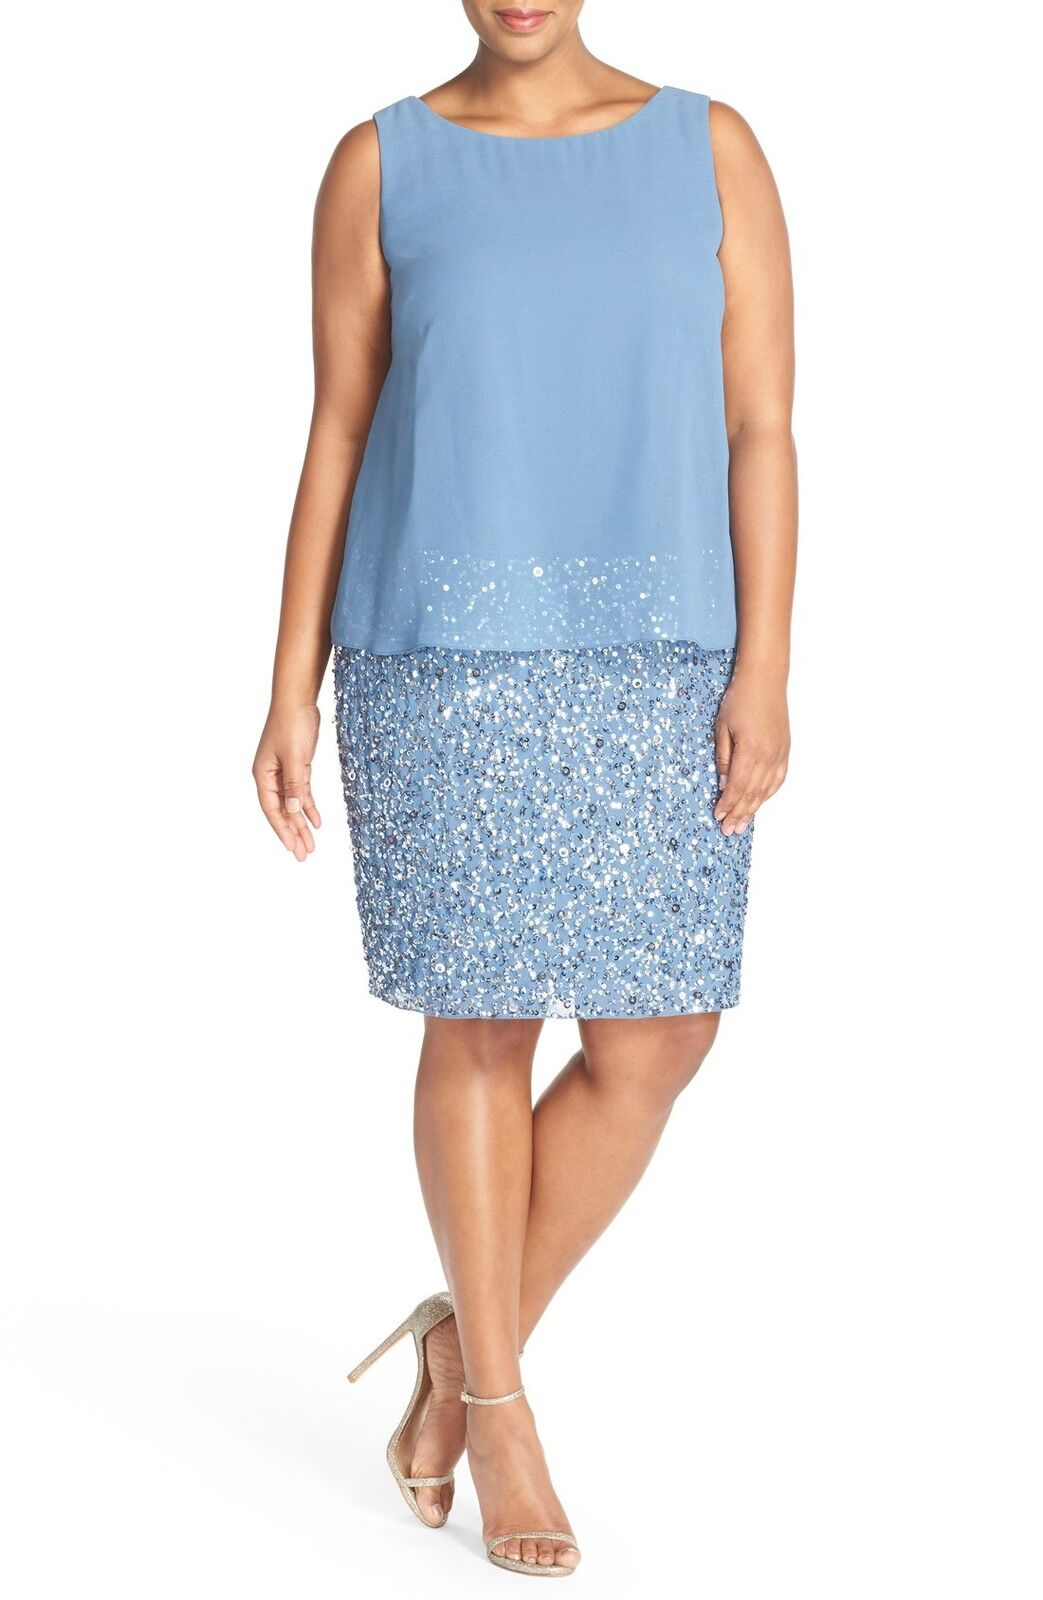 NEW ADRIANNA PAPELL Sequin Popover DRESS SIZE 14W  NILE blueE NORDSTROM